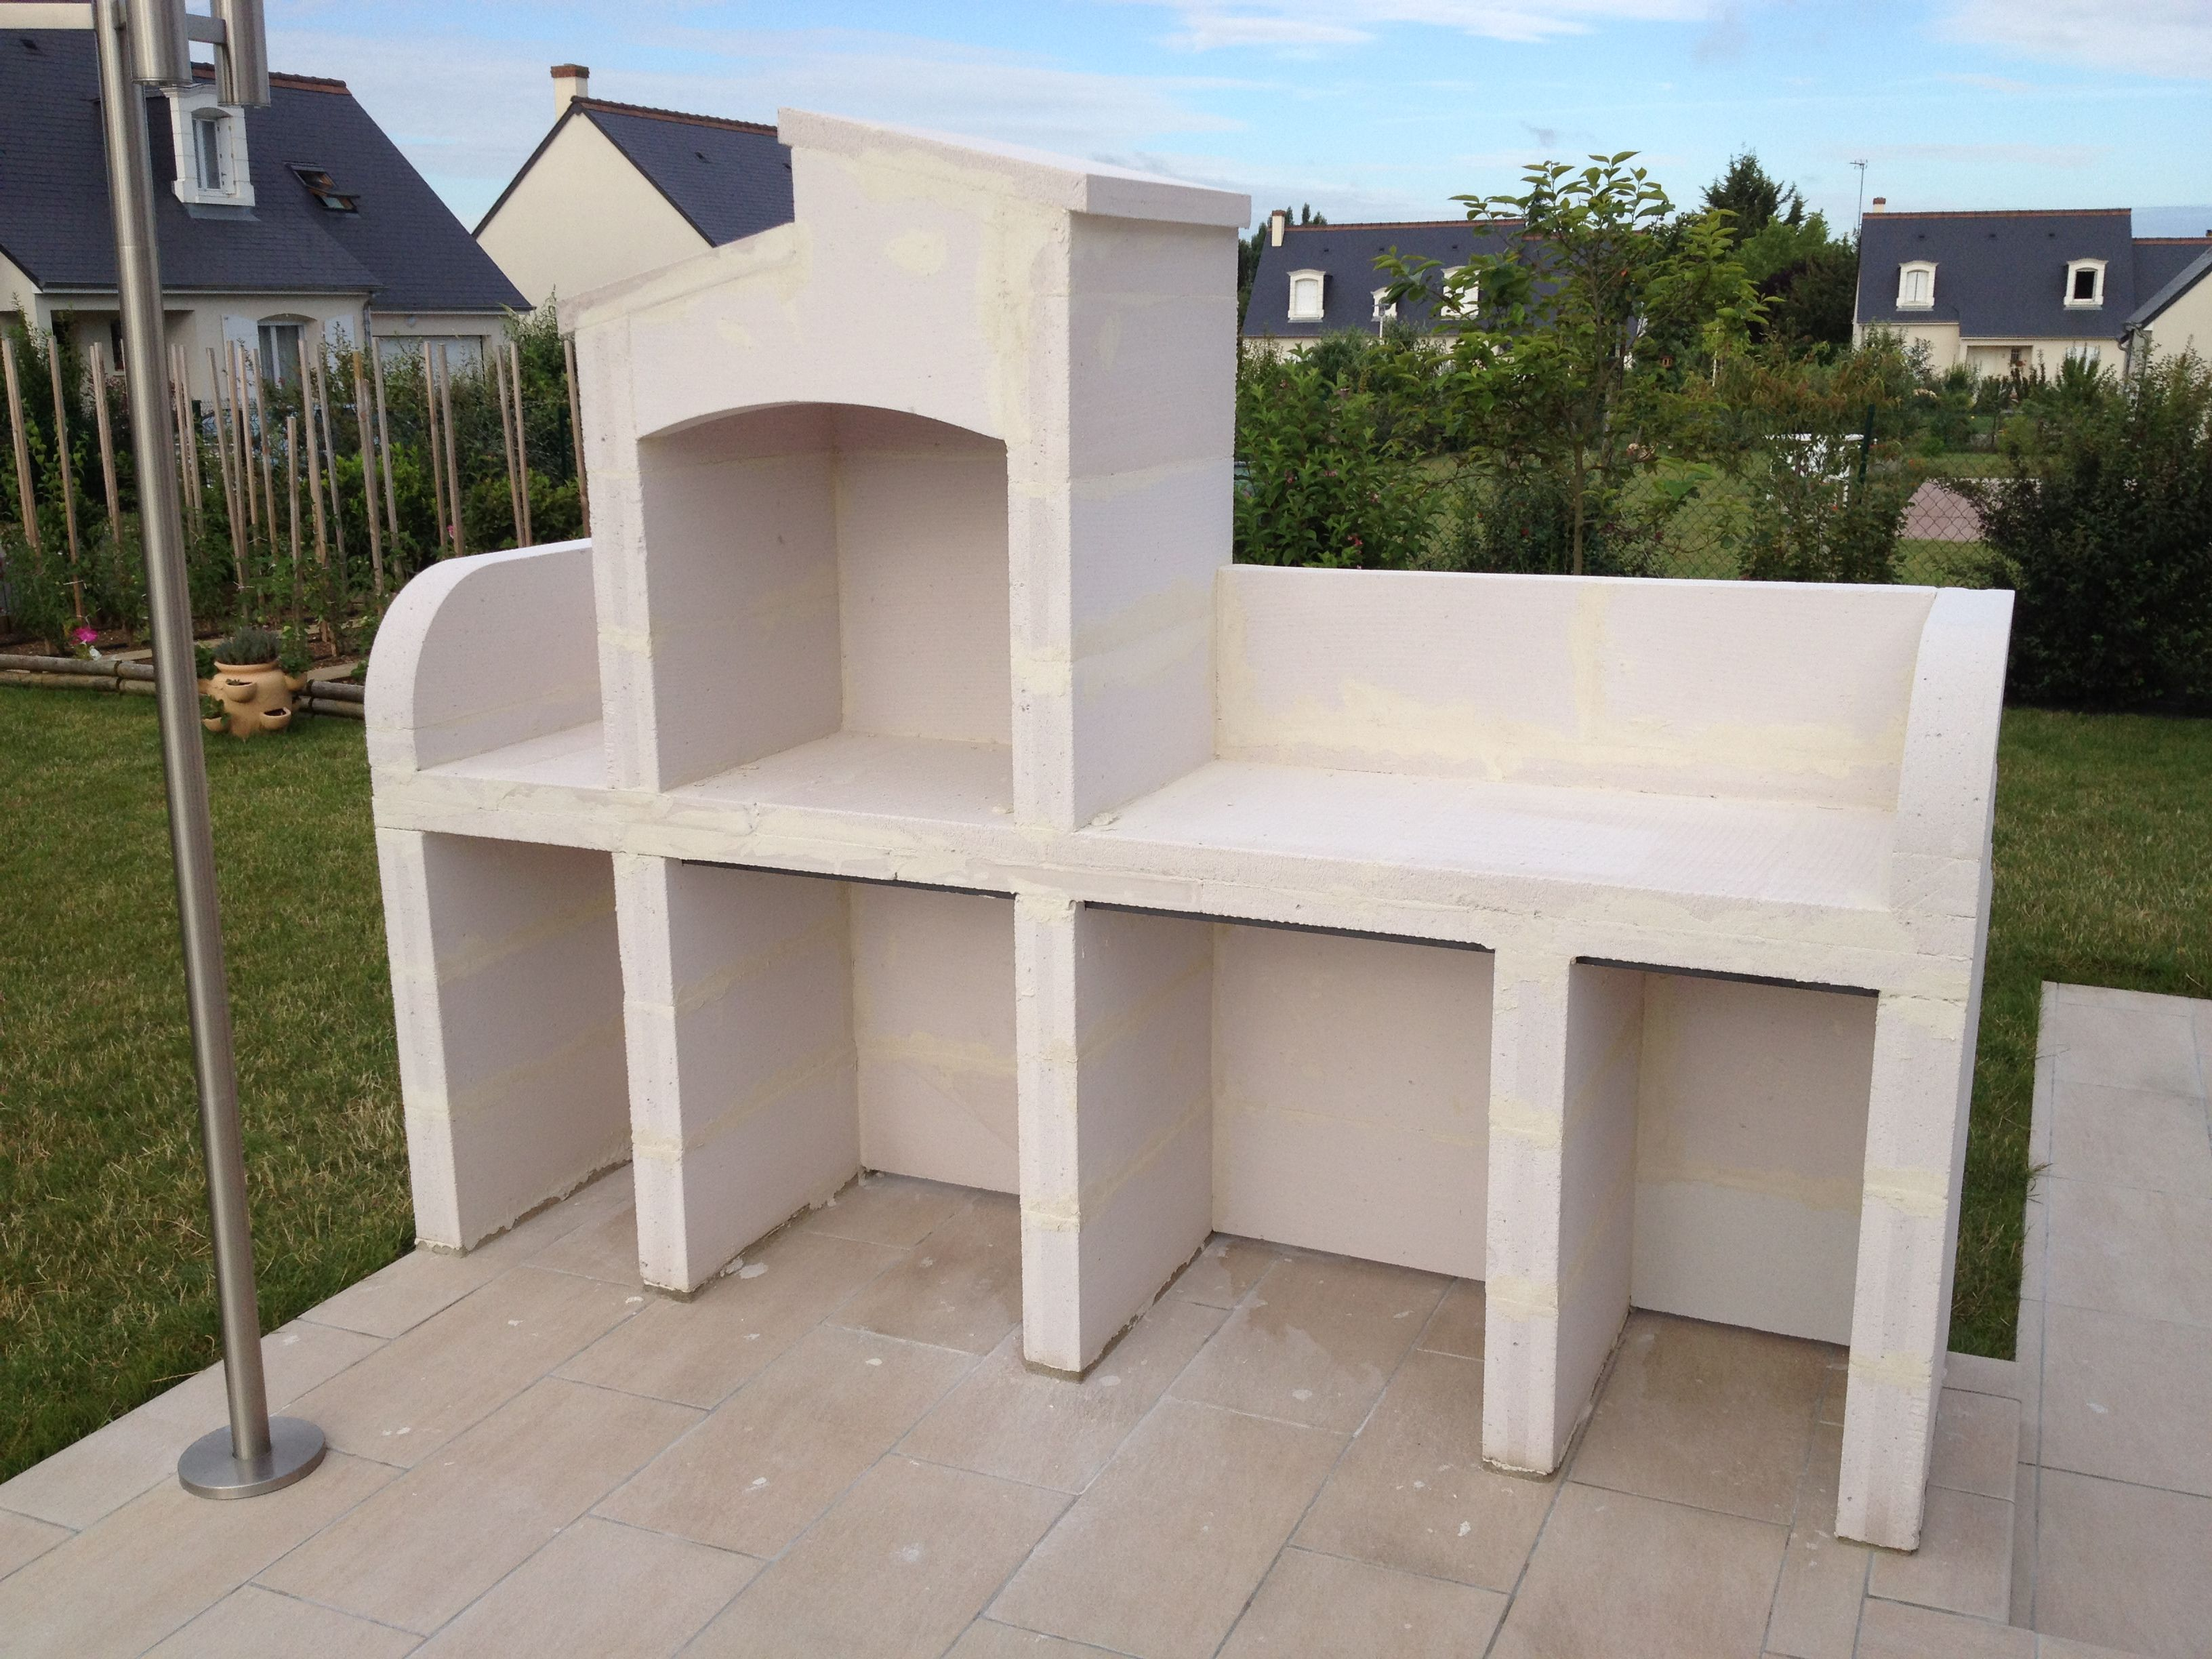 Pingl par laure bringuet sur barbecue pinterest for Construire barbecue exterieur